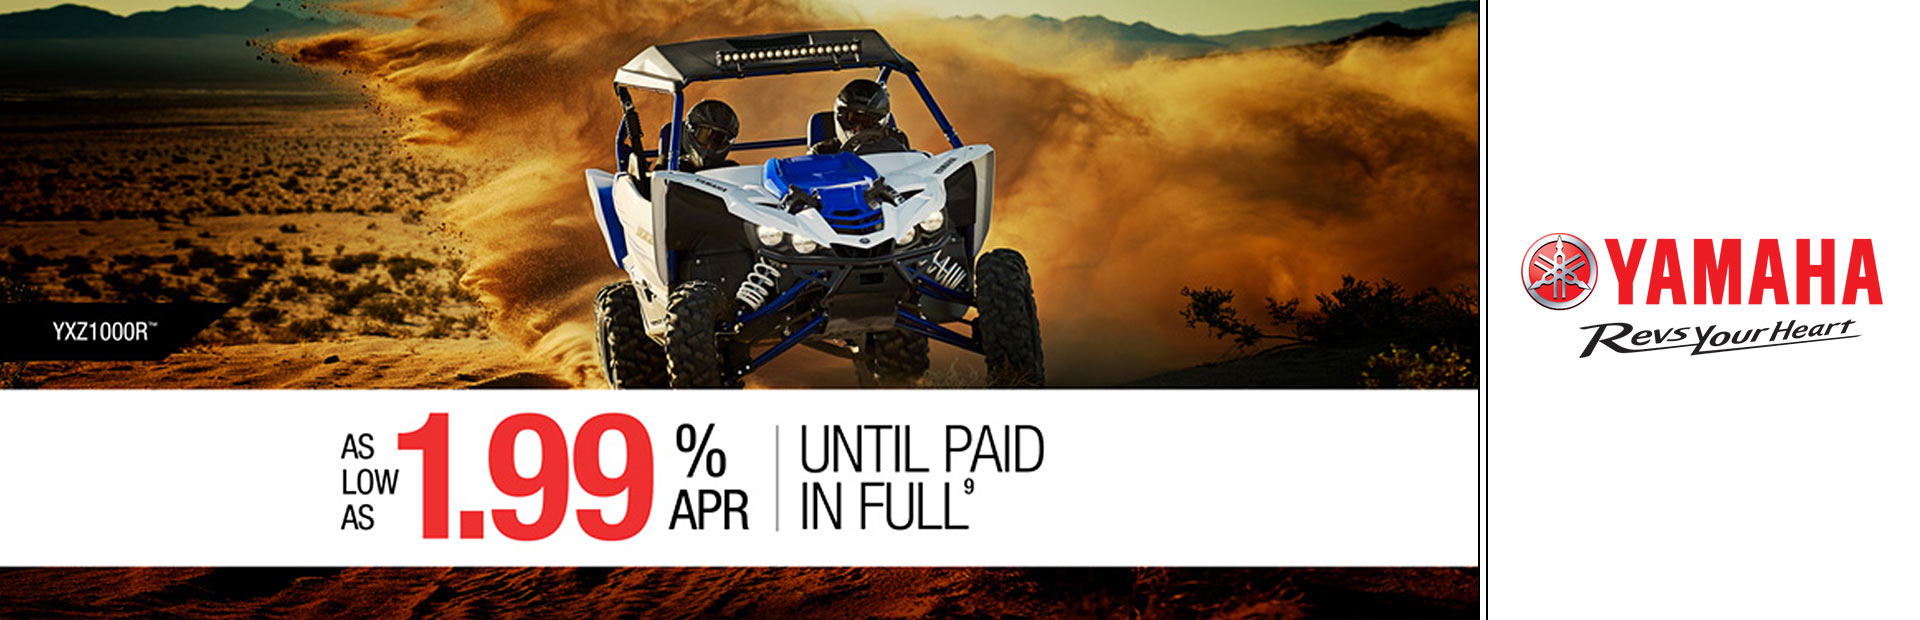 Yamaha: As Low As 1.99% APR Until Paid In Full